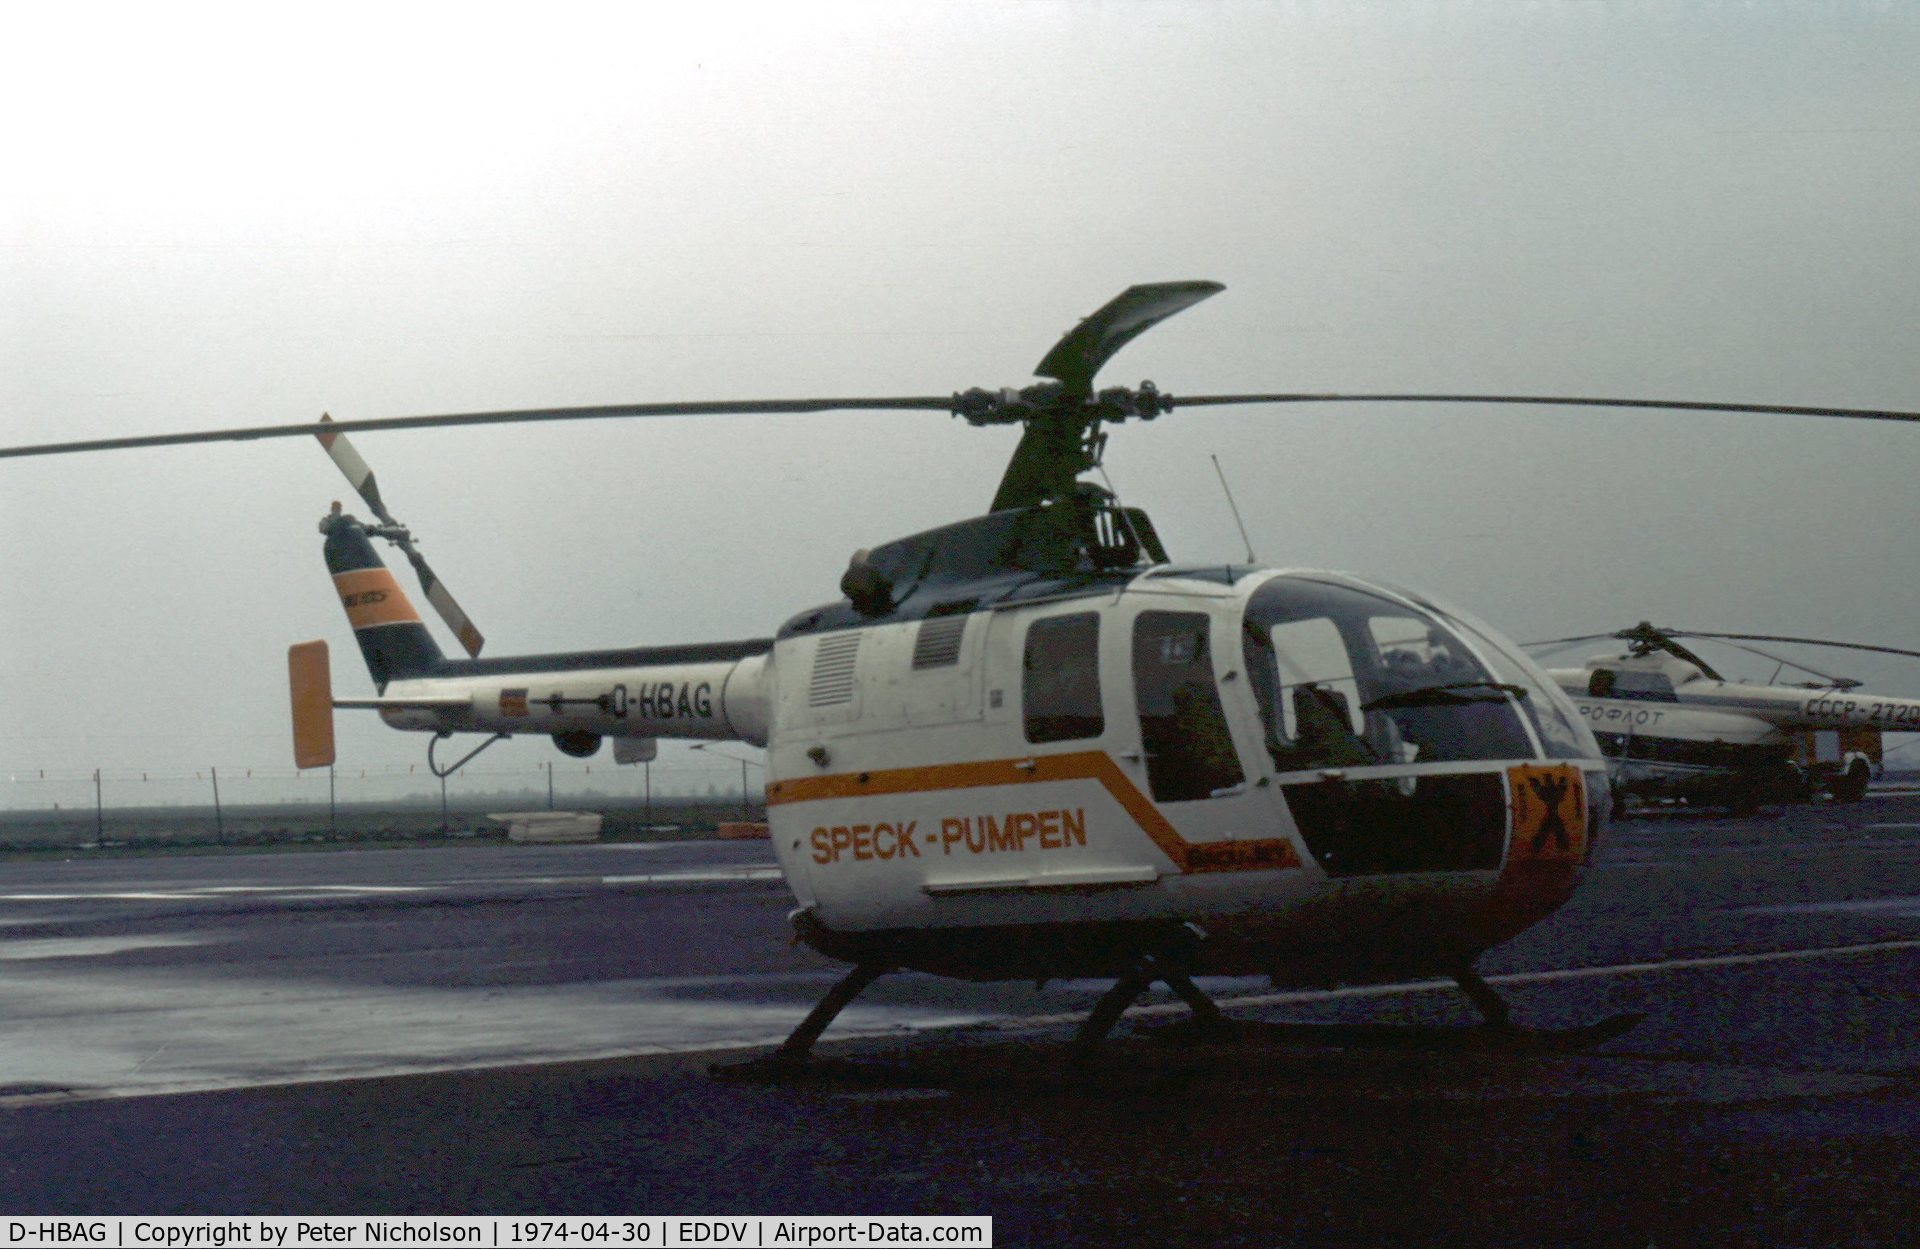 D-HBAG, 1972 MBB Bo-105C C/N S-37, MBB Bo.105 on display at the 1974 Hannover Airshow.